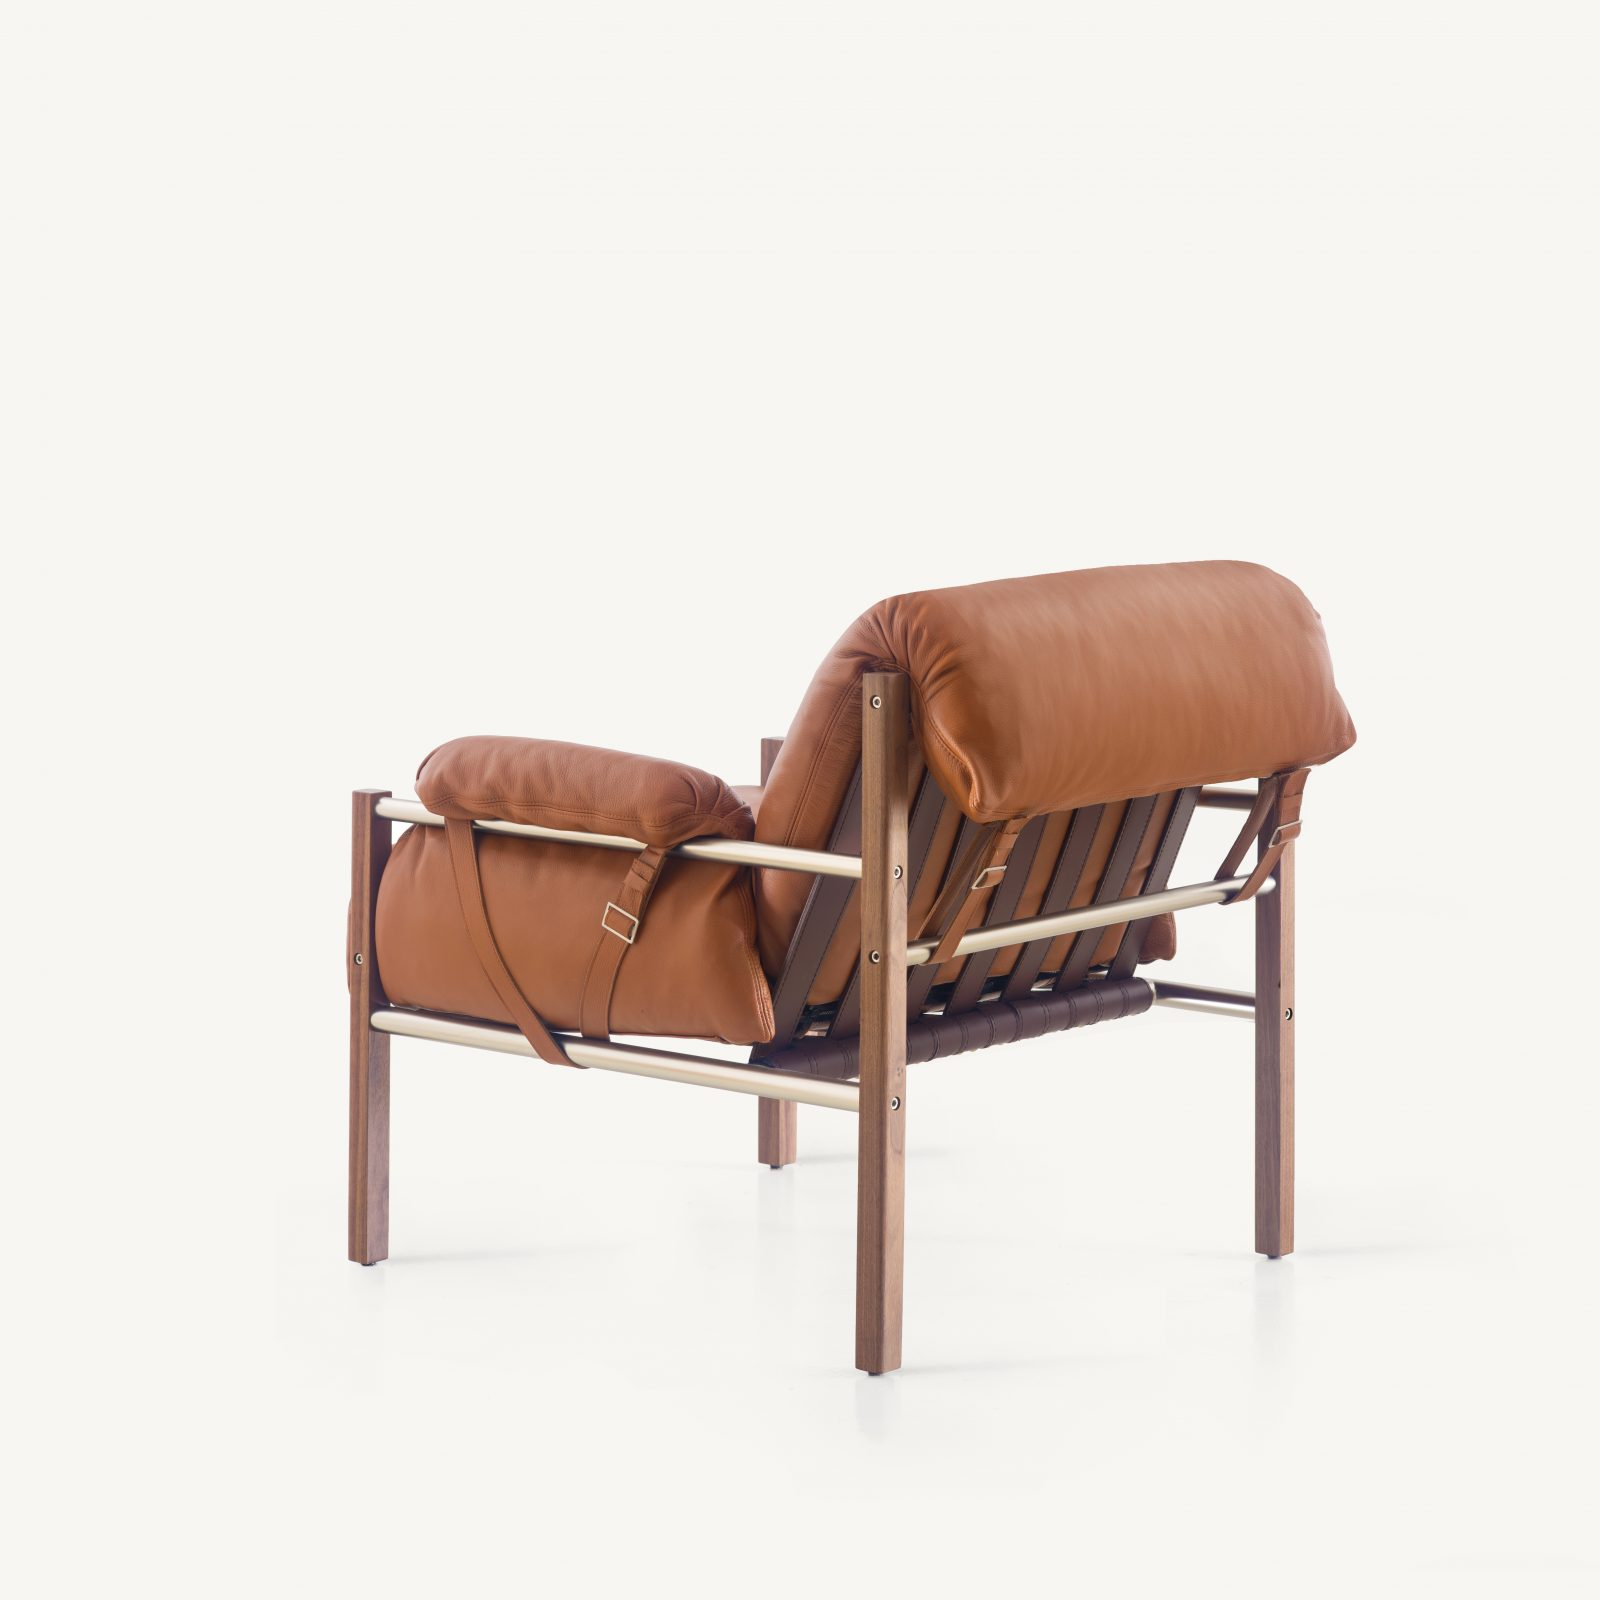 BassamFellows CB-570 Sling Club Chair in solid Walnut and plated steel, credit MARCO FAVALLI